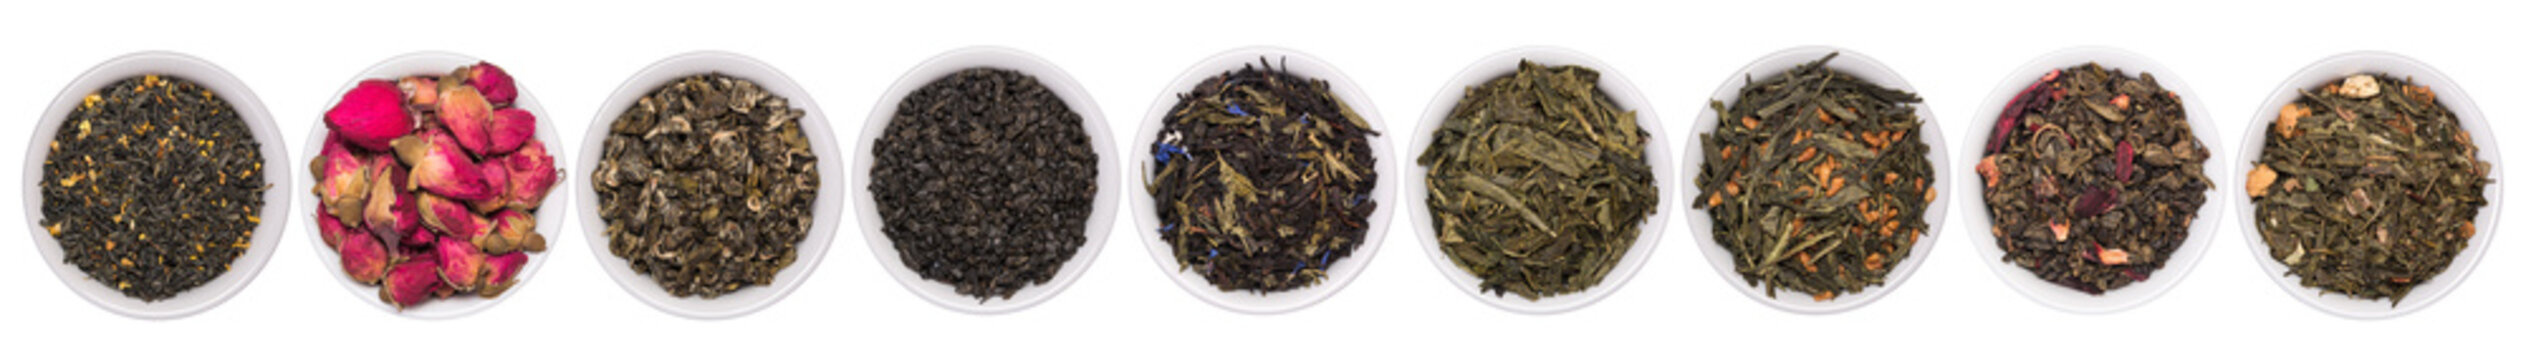 A set of dry herbal and floral tea. Green, black, composition teas isolated on white background.